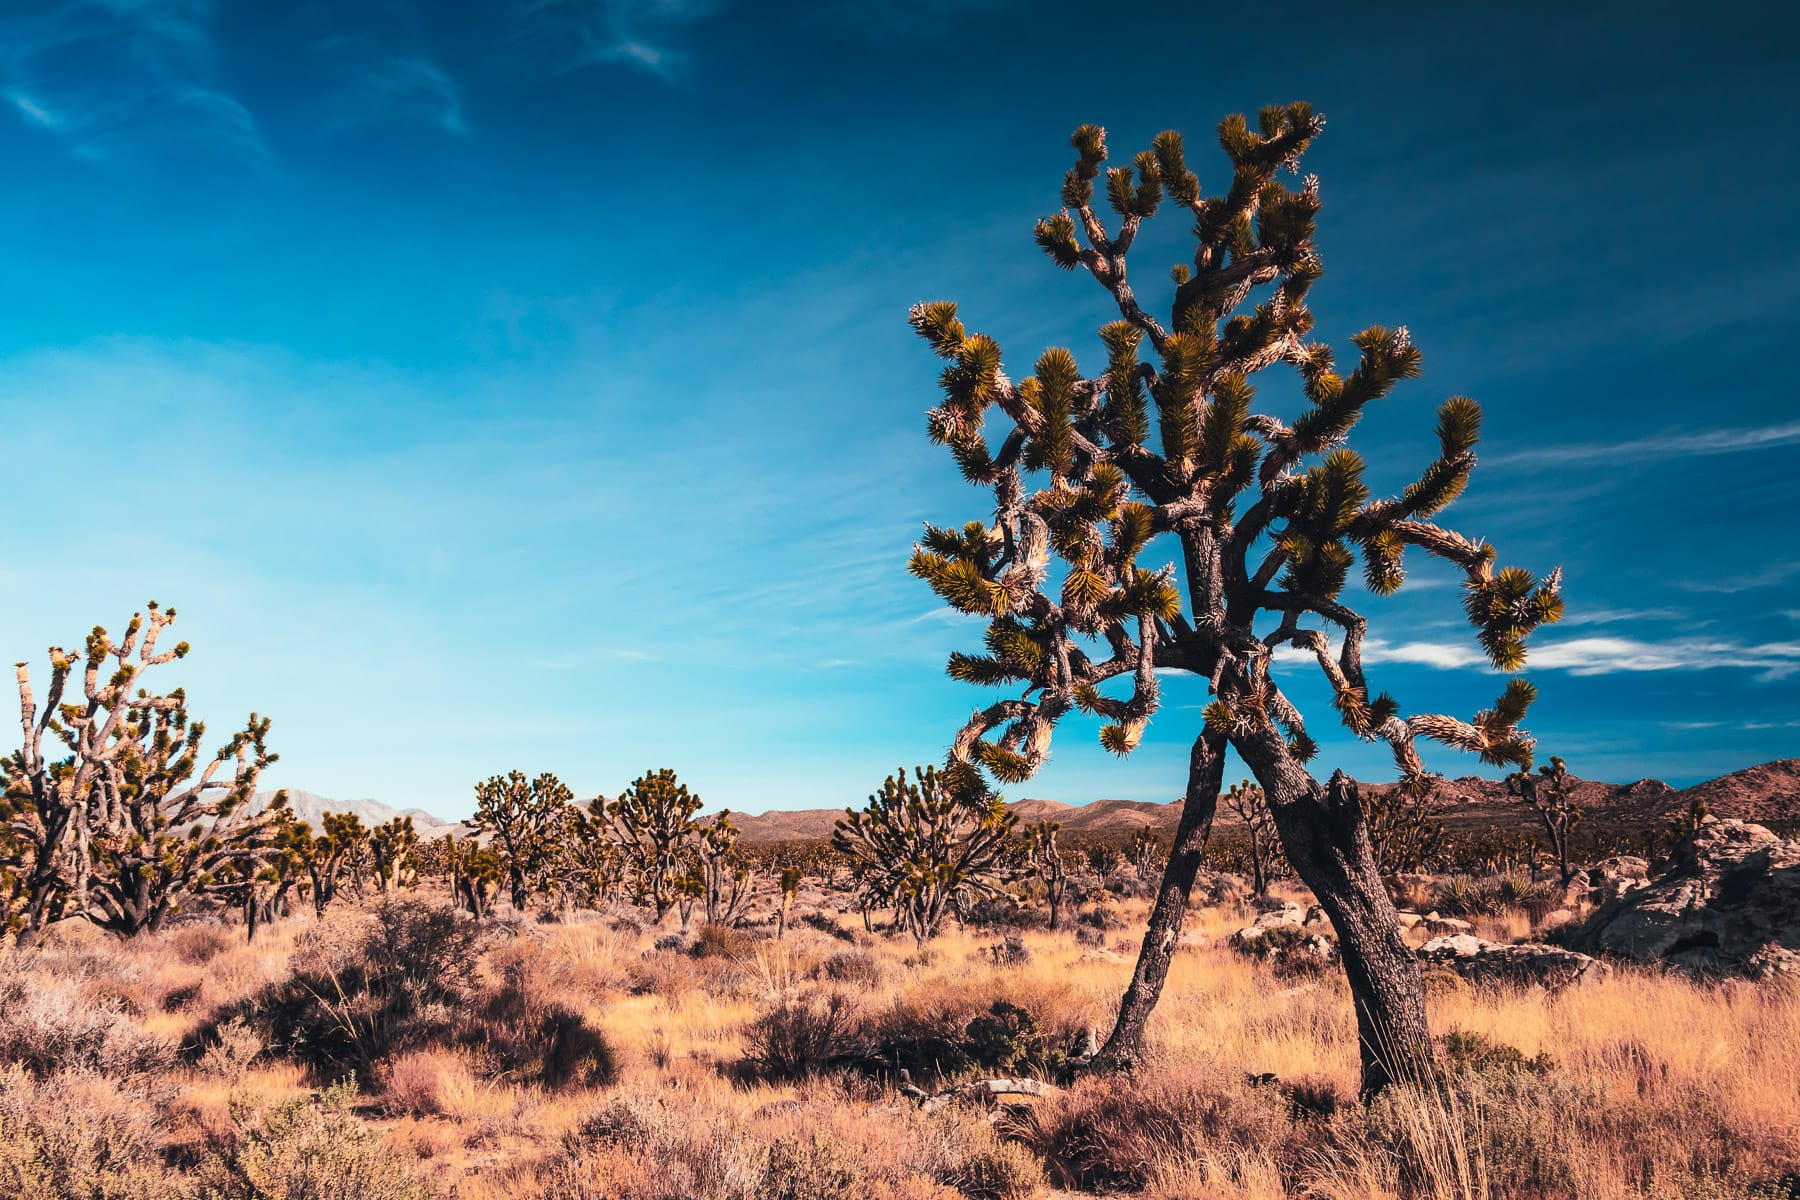 An arid expanse of Joshua trees stretches to the far mountains at California's Mojave National Preserve.